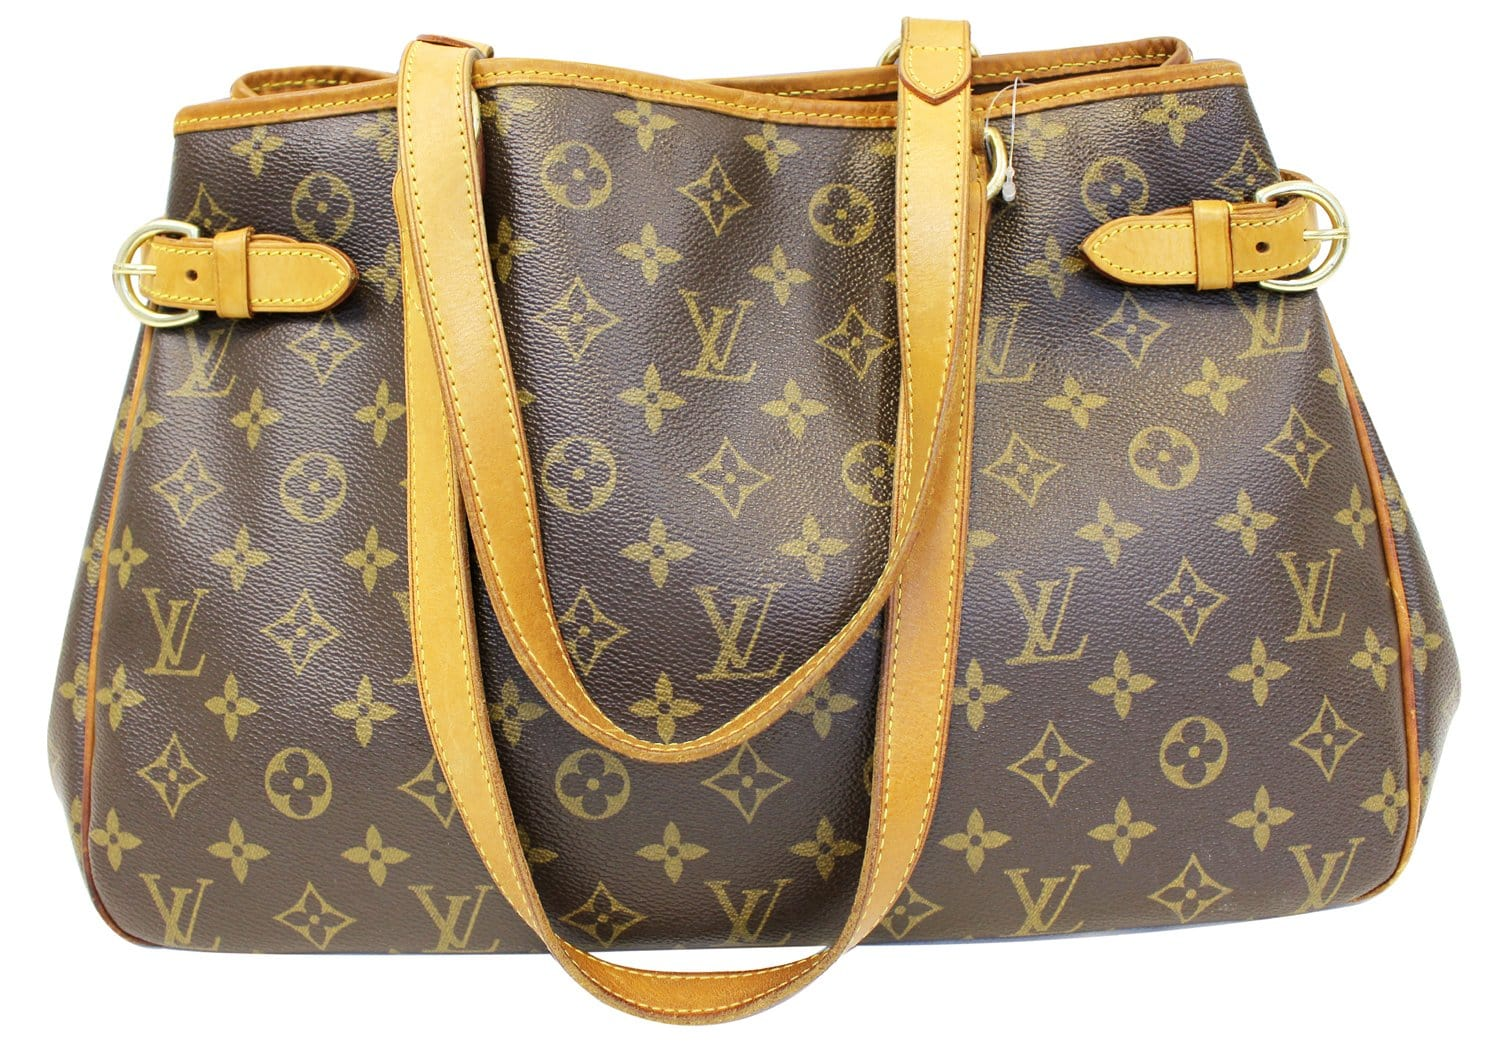 e184b0e0bbba LOUIS VUITTON Used Shoulder Bag Monogram Canvas Batignolles ...